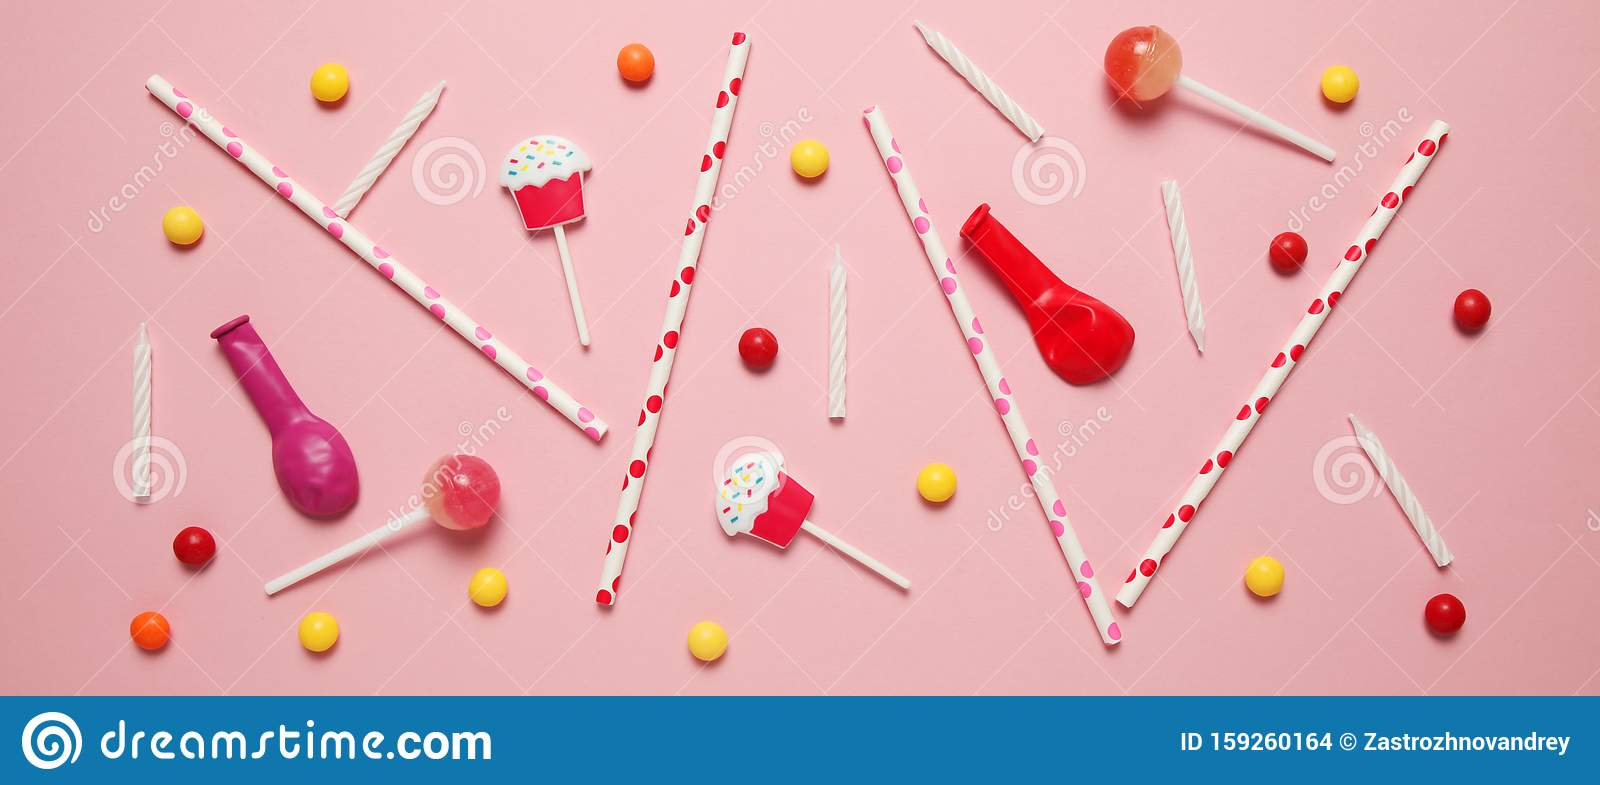 Minimal happy birthday decor for party. Sweet candy, balloons, straw